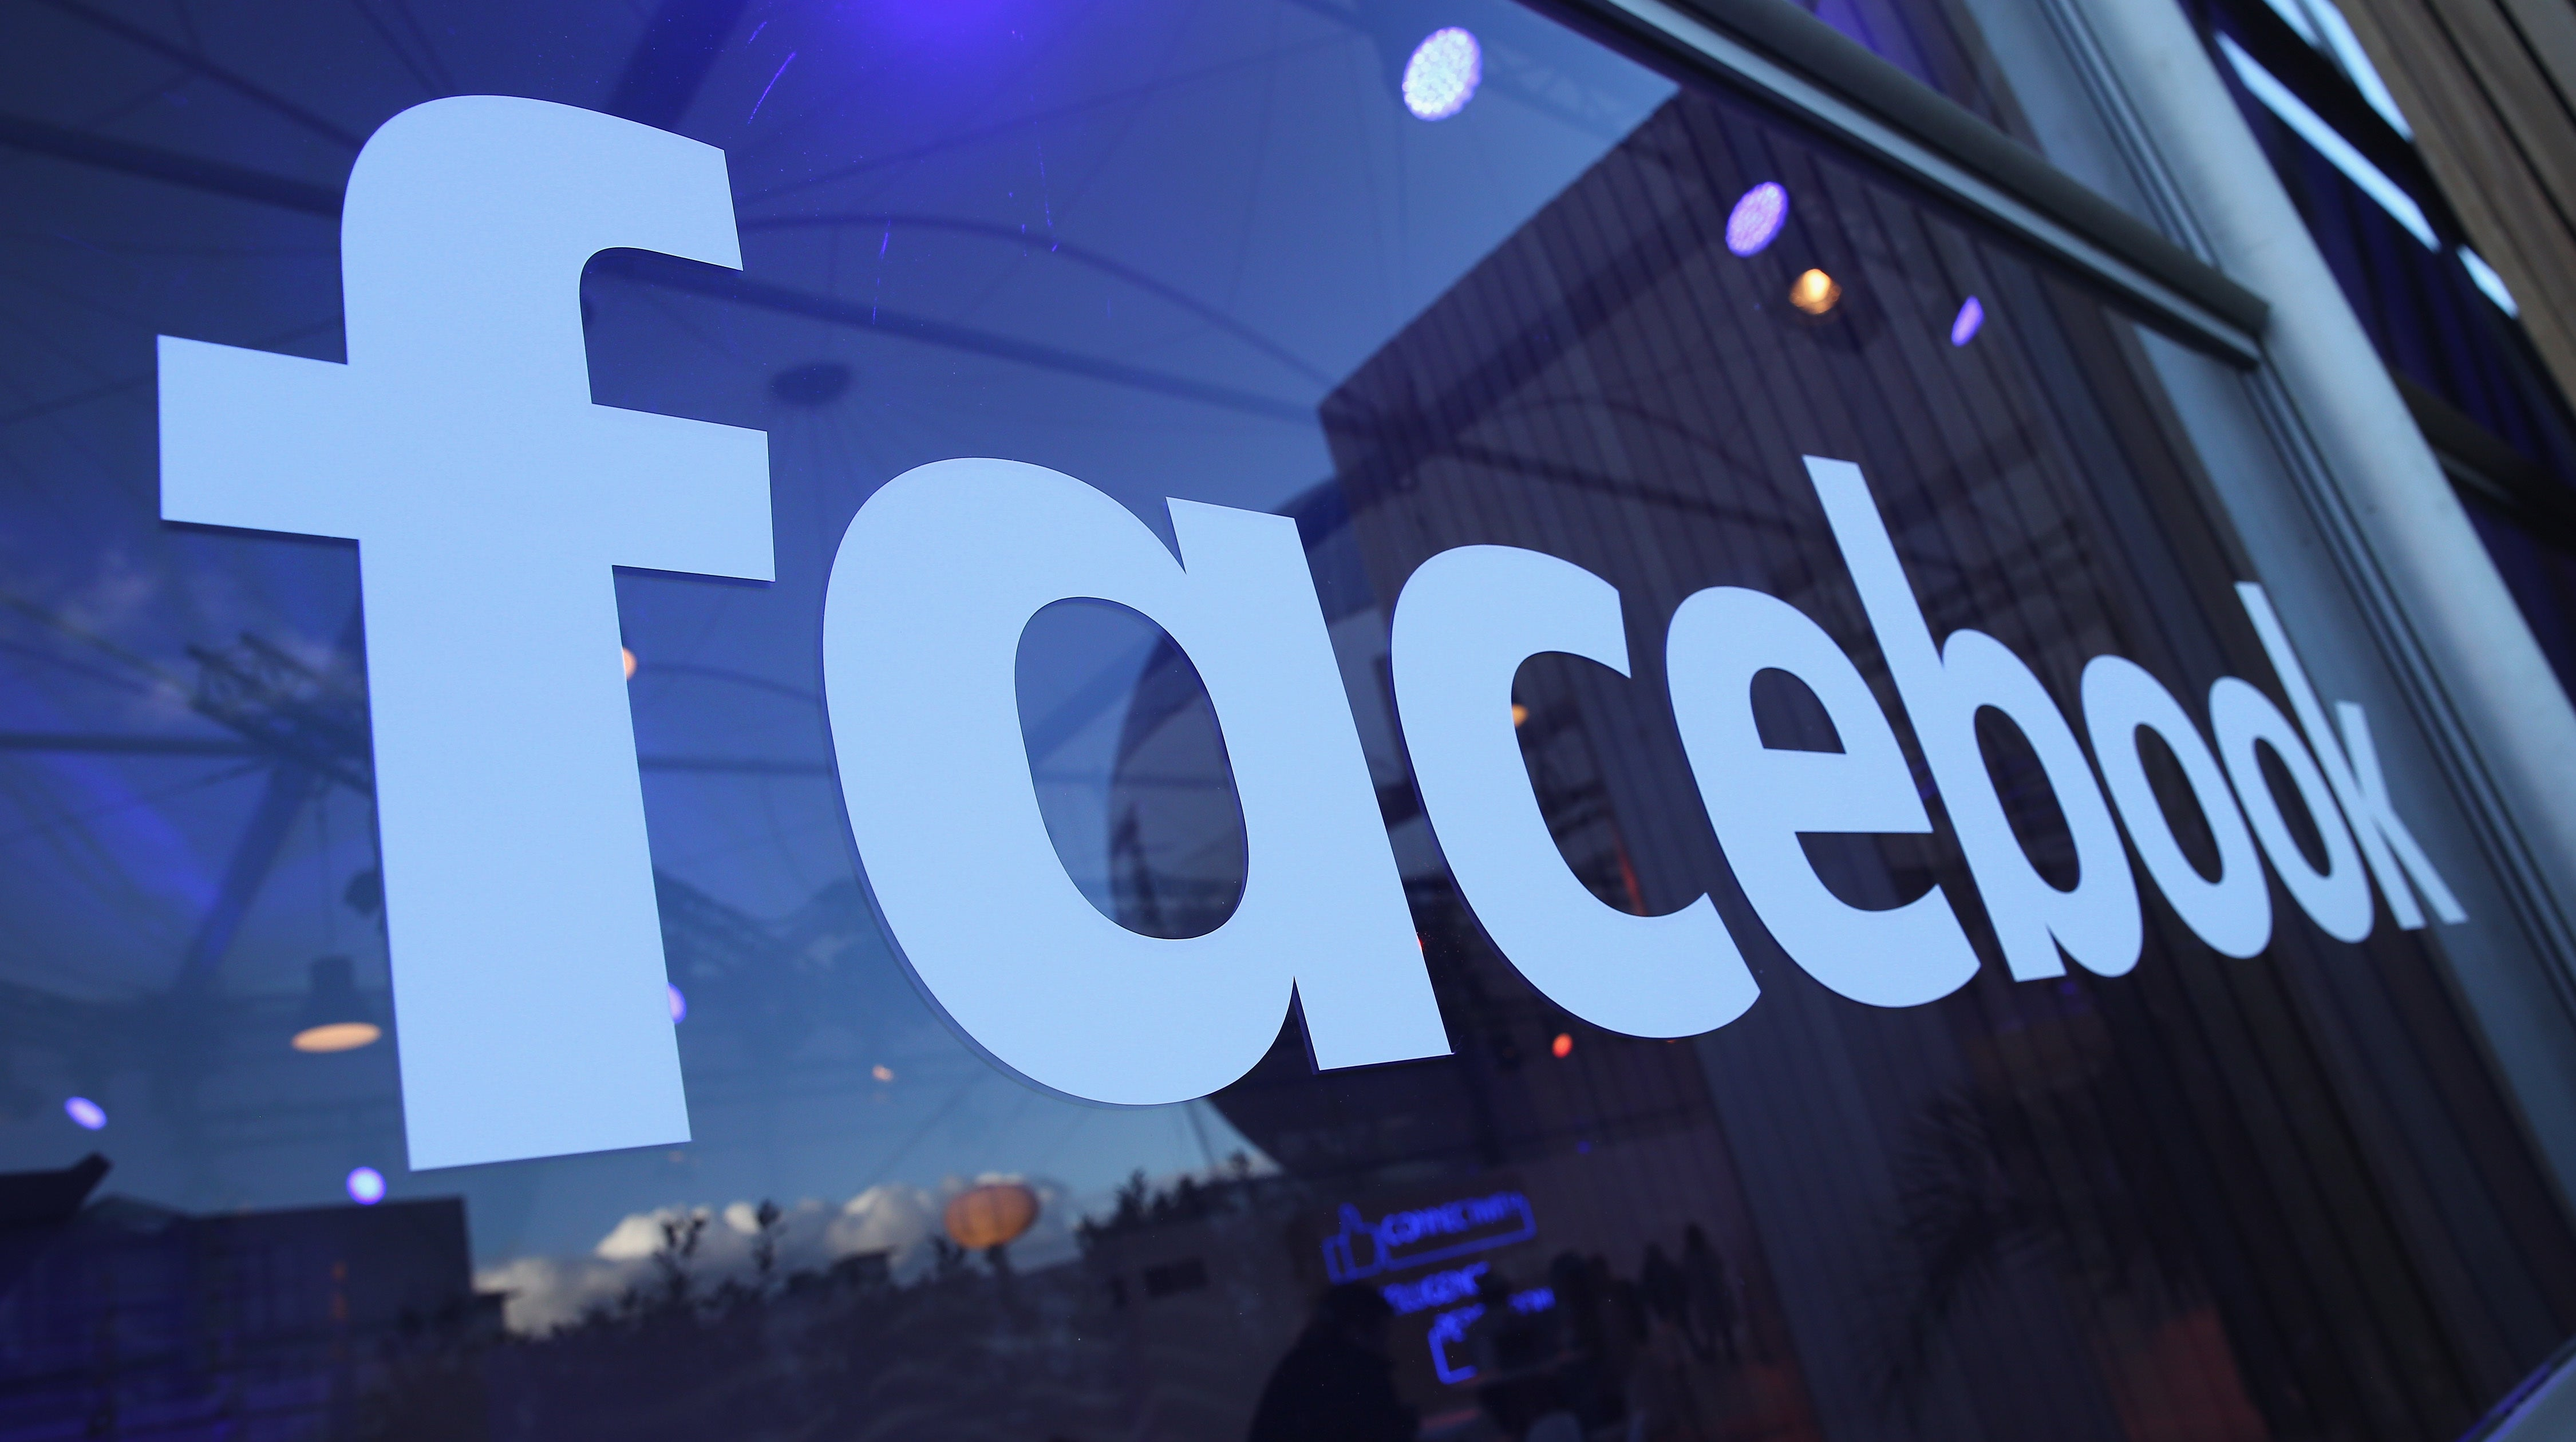 Report: Facebook Is Fighting A Demand To 'Wiretap' Messenger In A US Gang Case